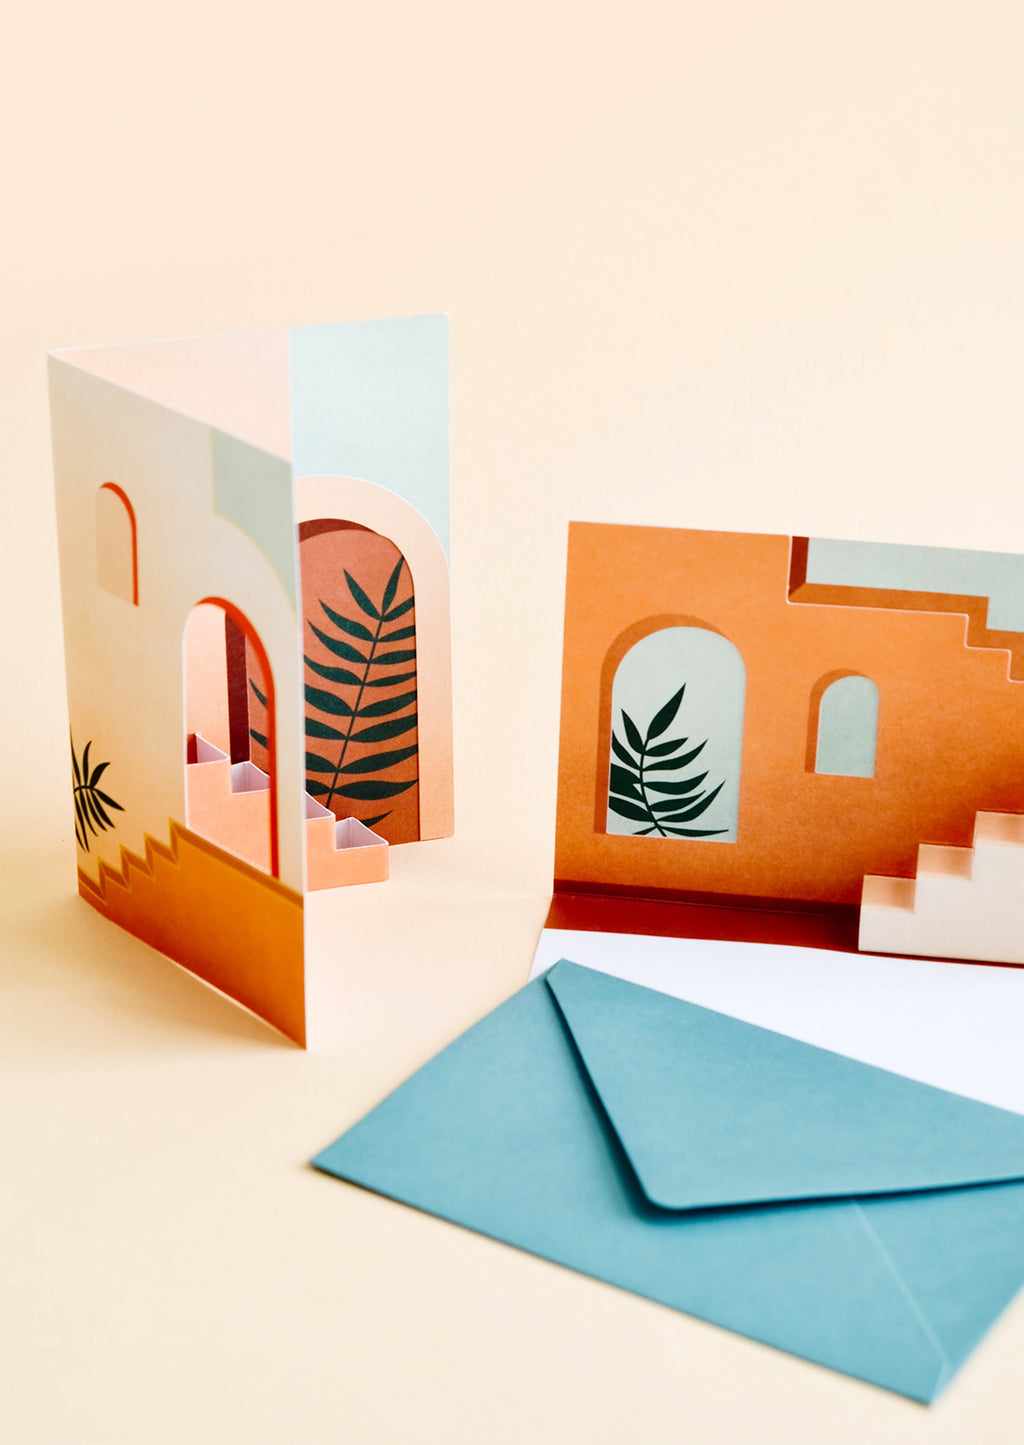 2: Greeting cards open to reveal three dimensional interior